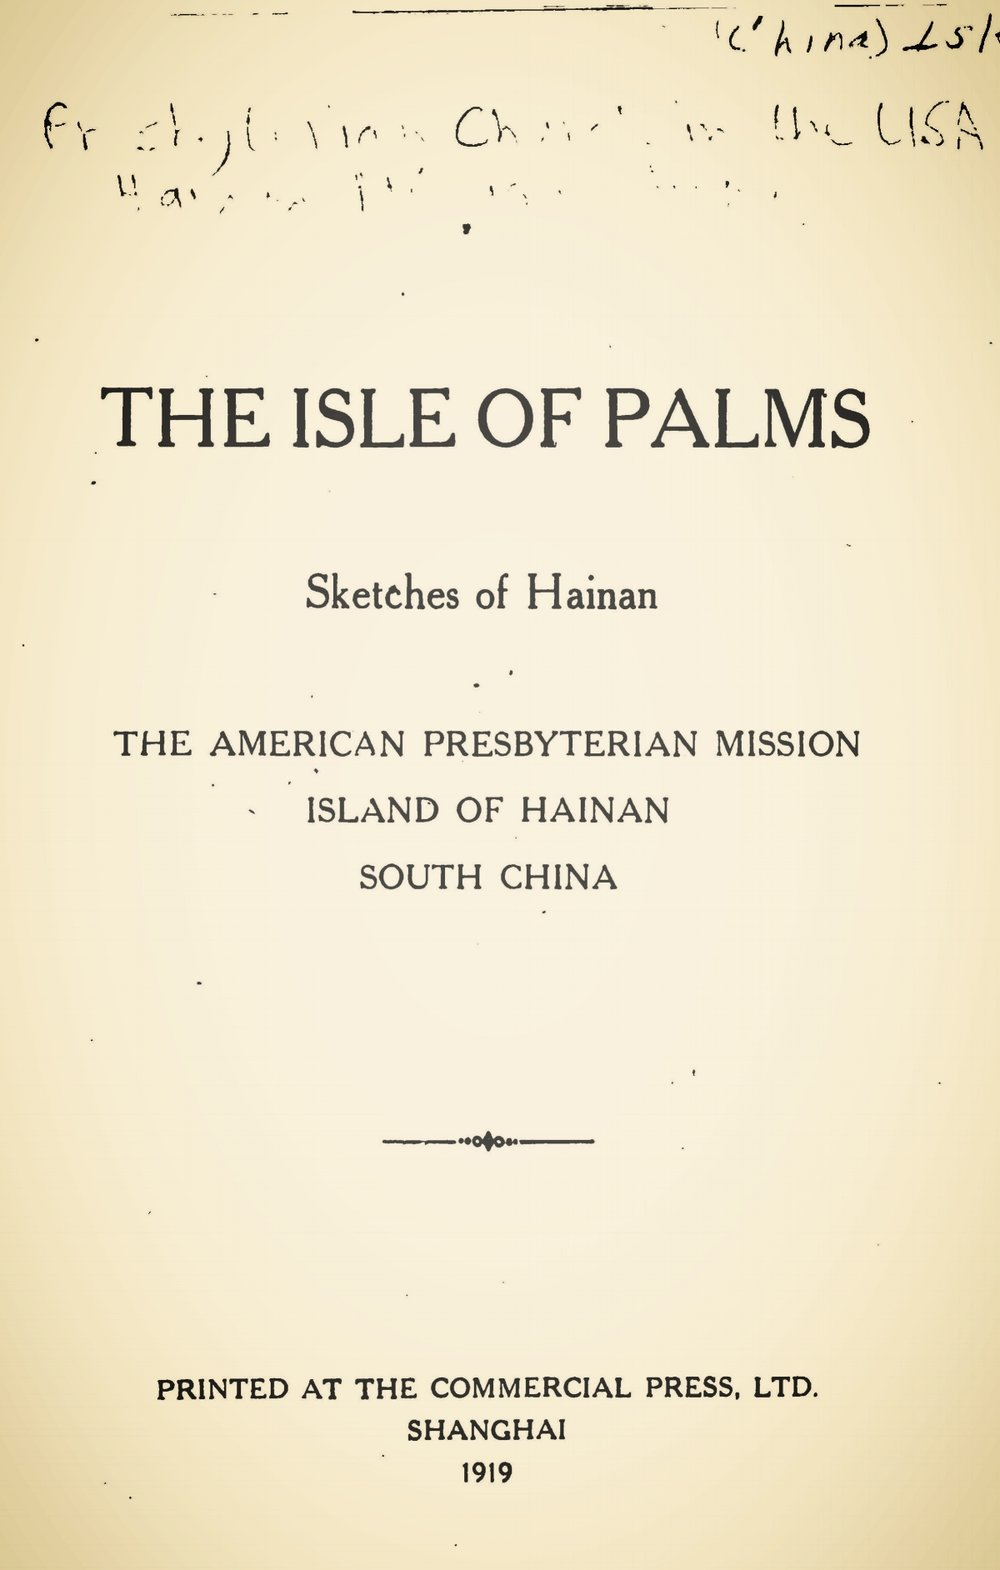 Gilman, Frank Patrick, The Isle of Palms Title Page.jpg